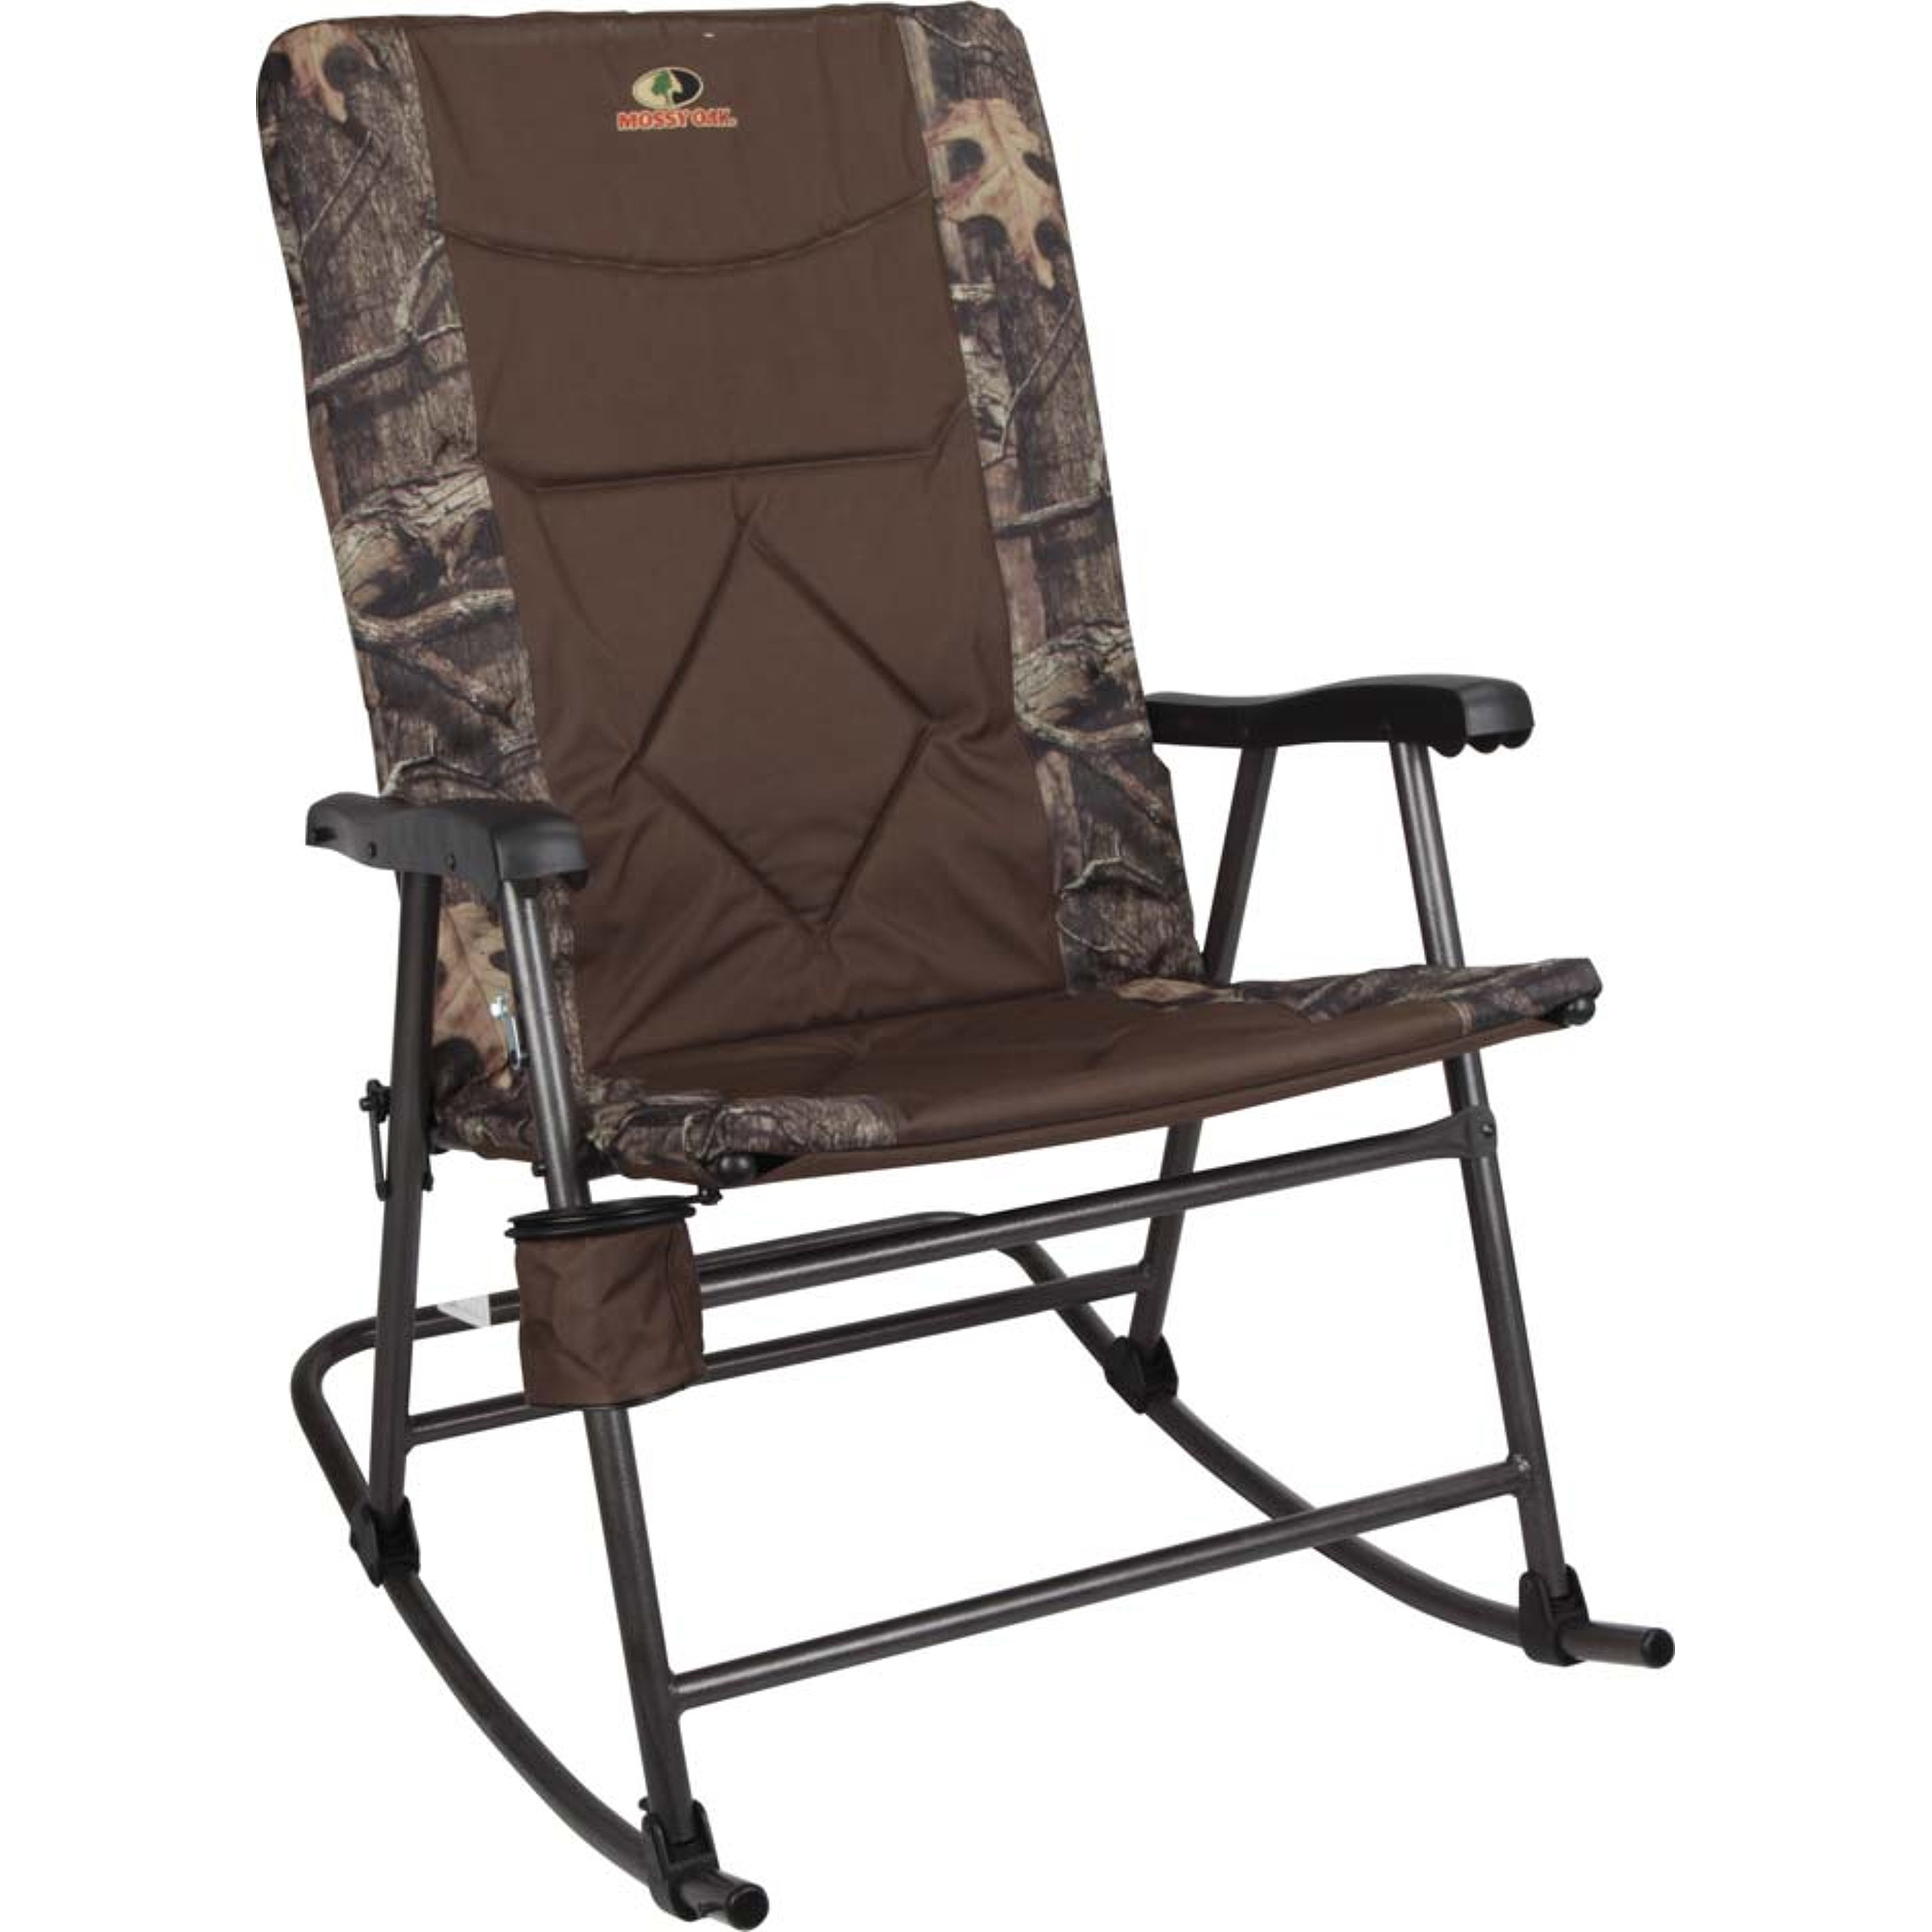 Mossy Oak Large Rocker Chair With Cup Holder Walmart Com